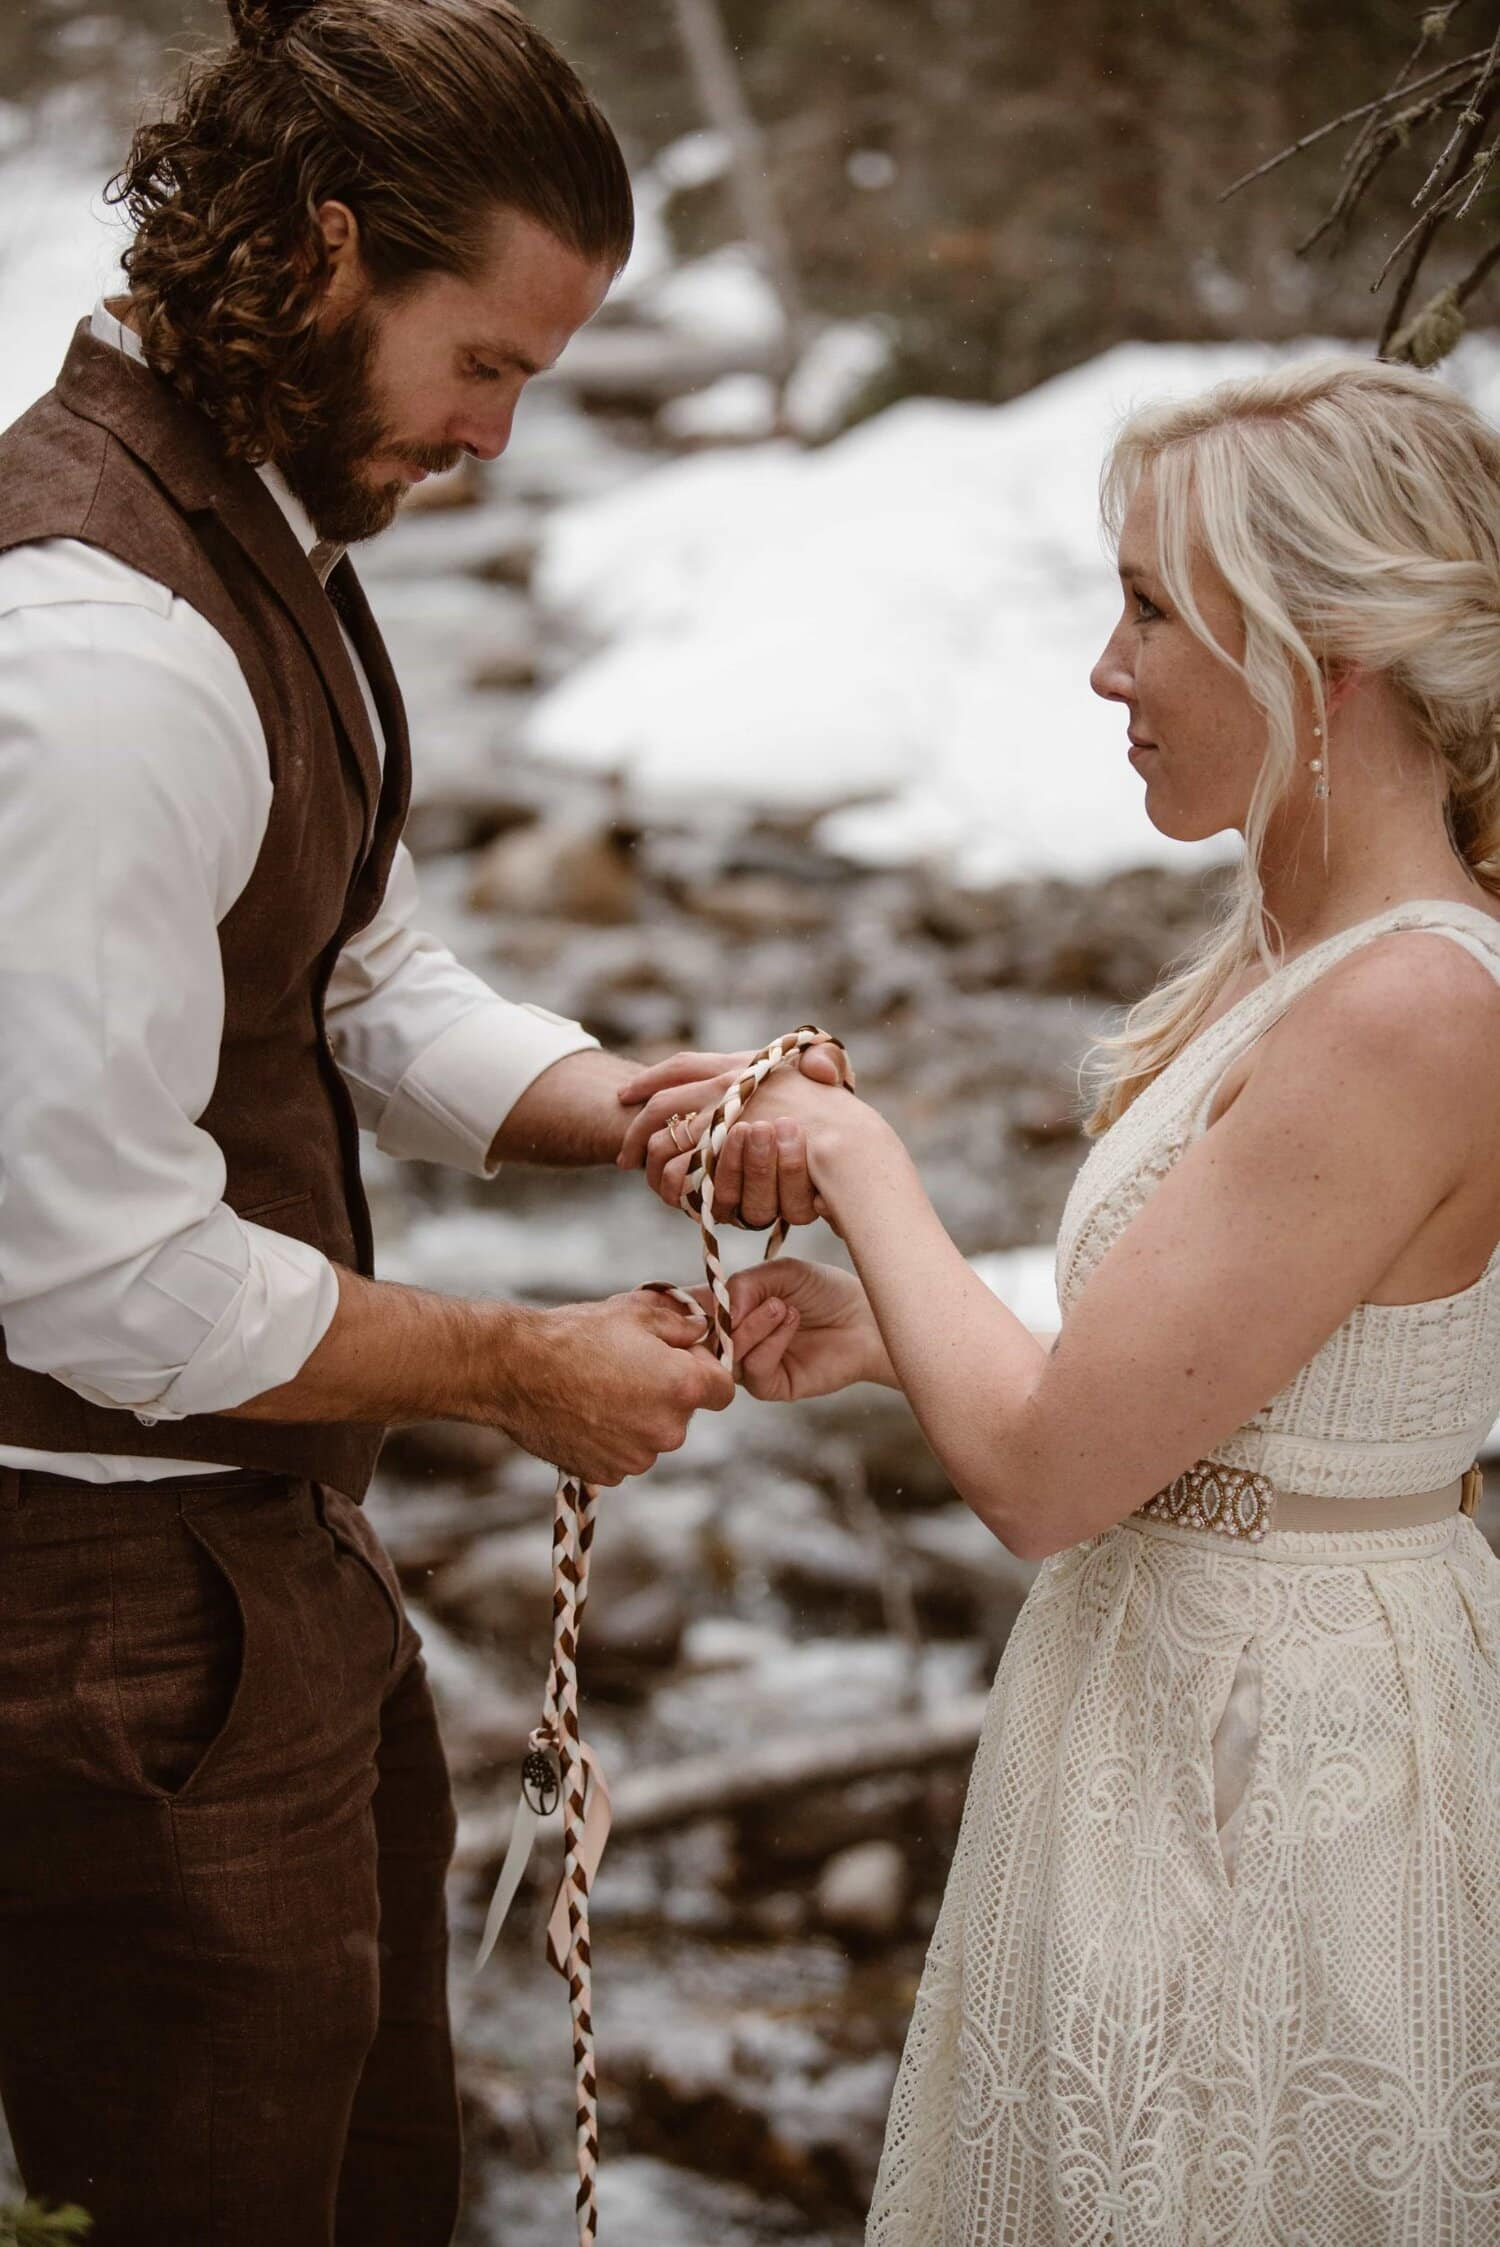 Groom ties rope around bride's hand during their wedding ceremony.